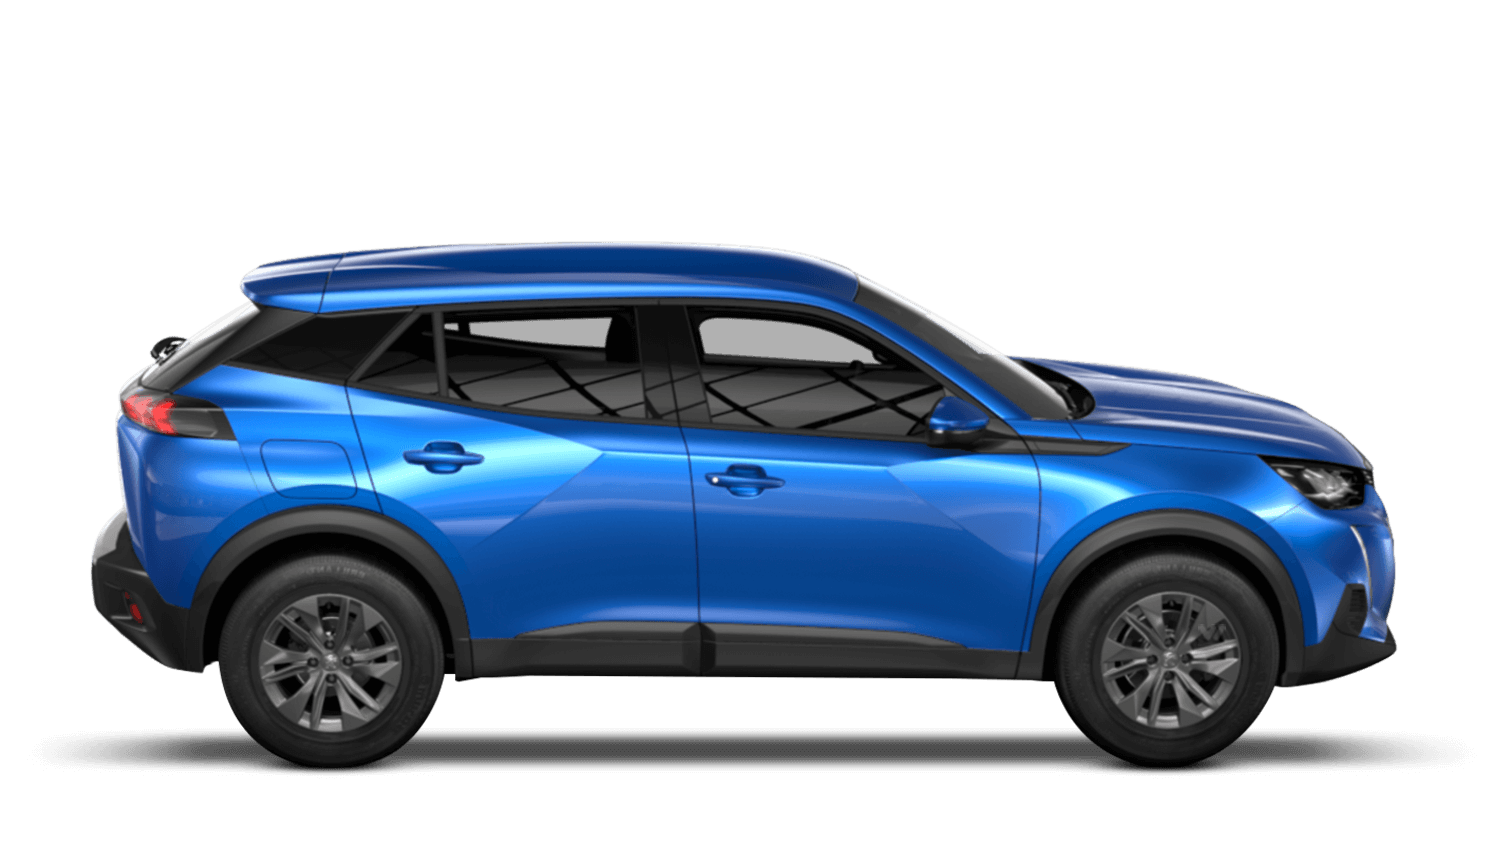 Vertigo Blue All-new Peugeot 2008 SUV